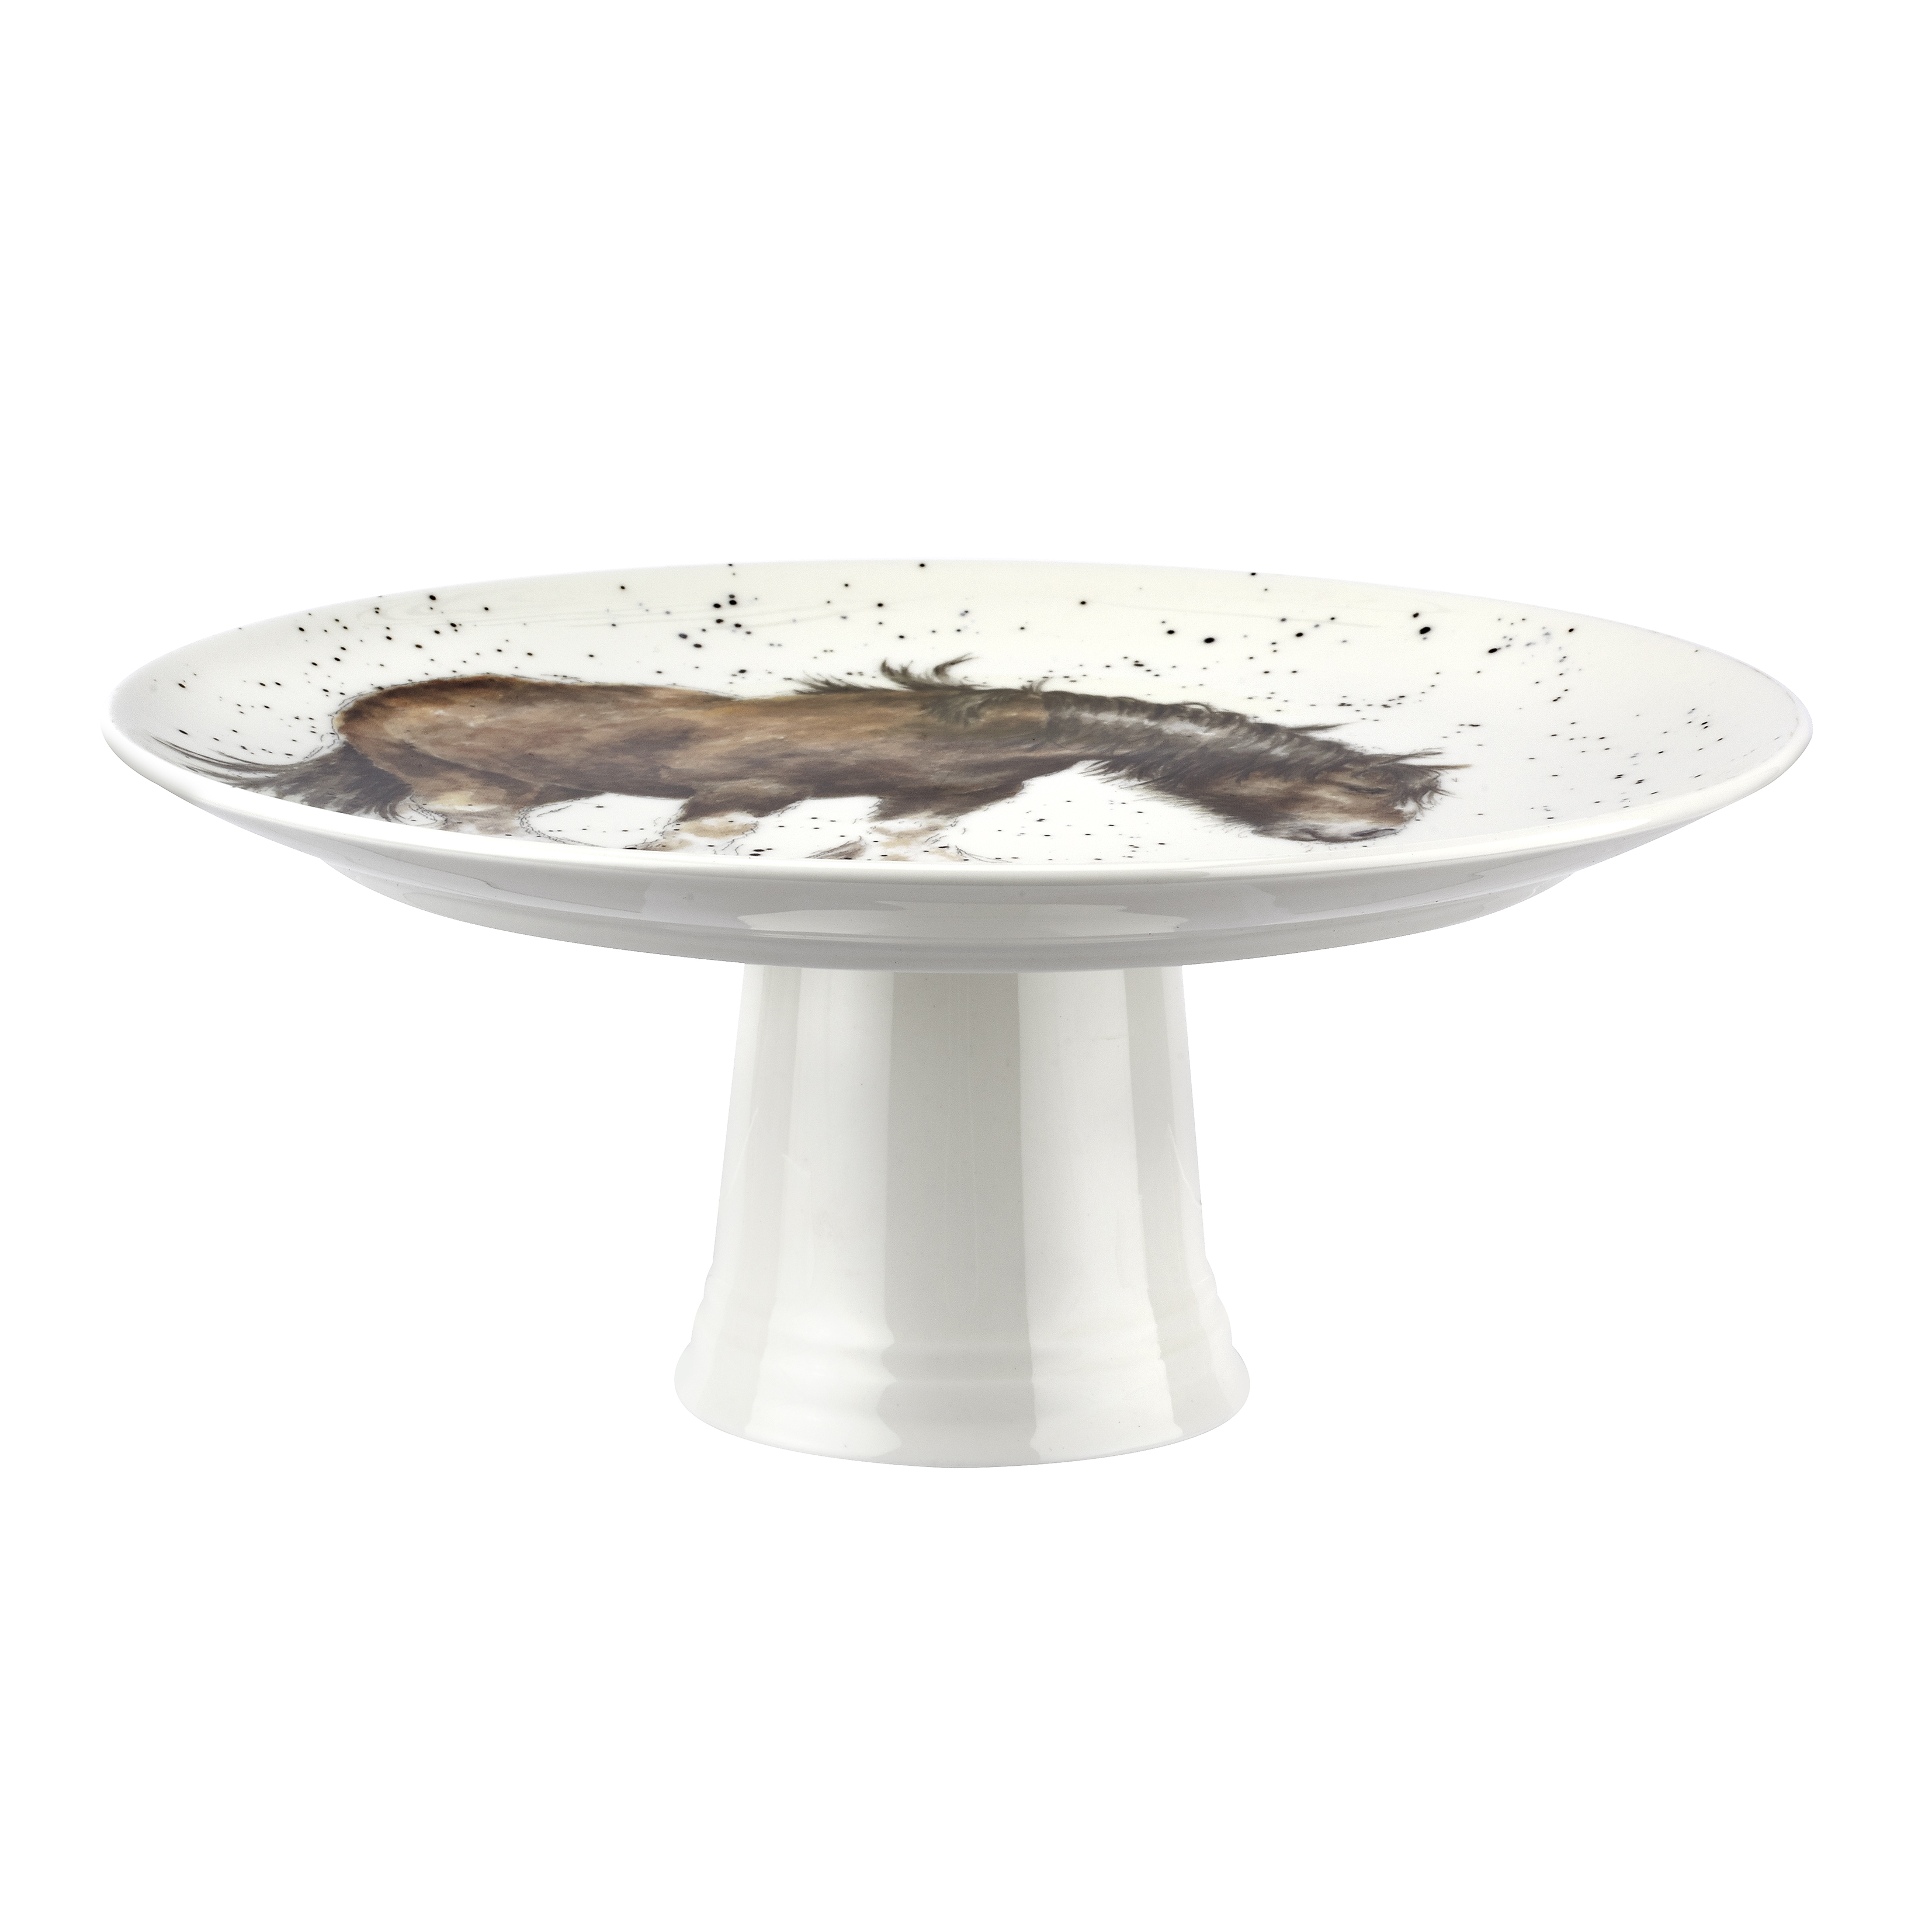 Royal Worcester Wrendale Designs 9.75 Inch Footed Cake Plate (Farmyard Friends) image number 2